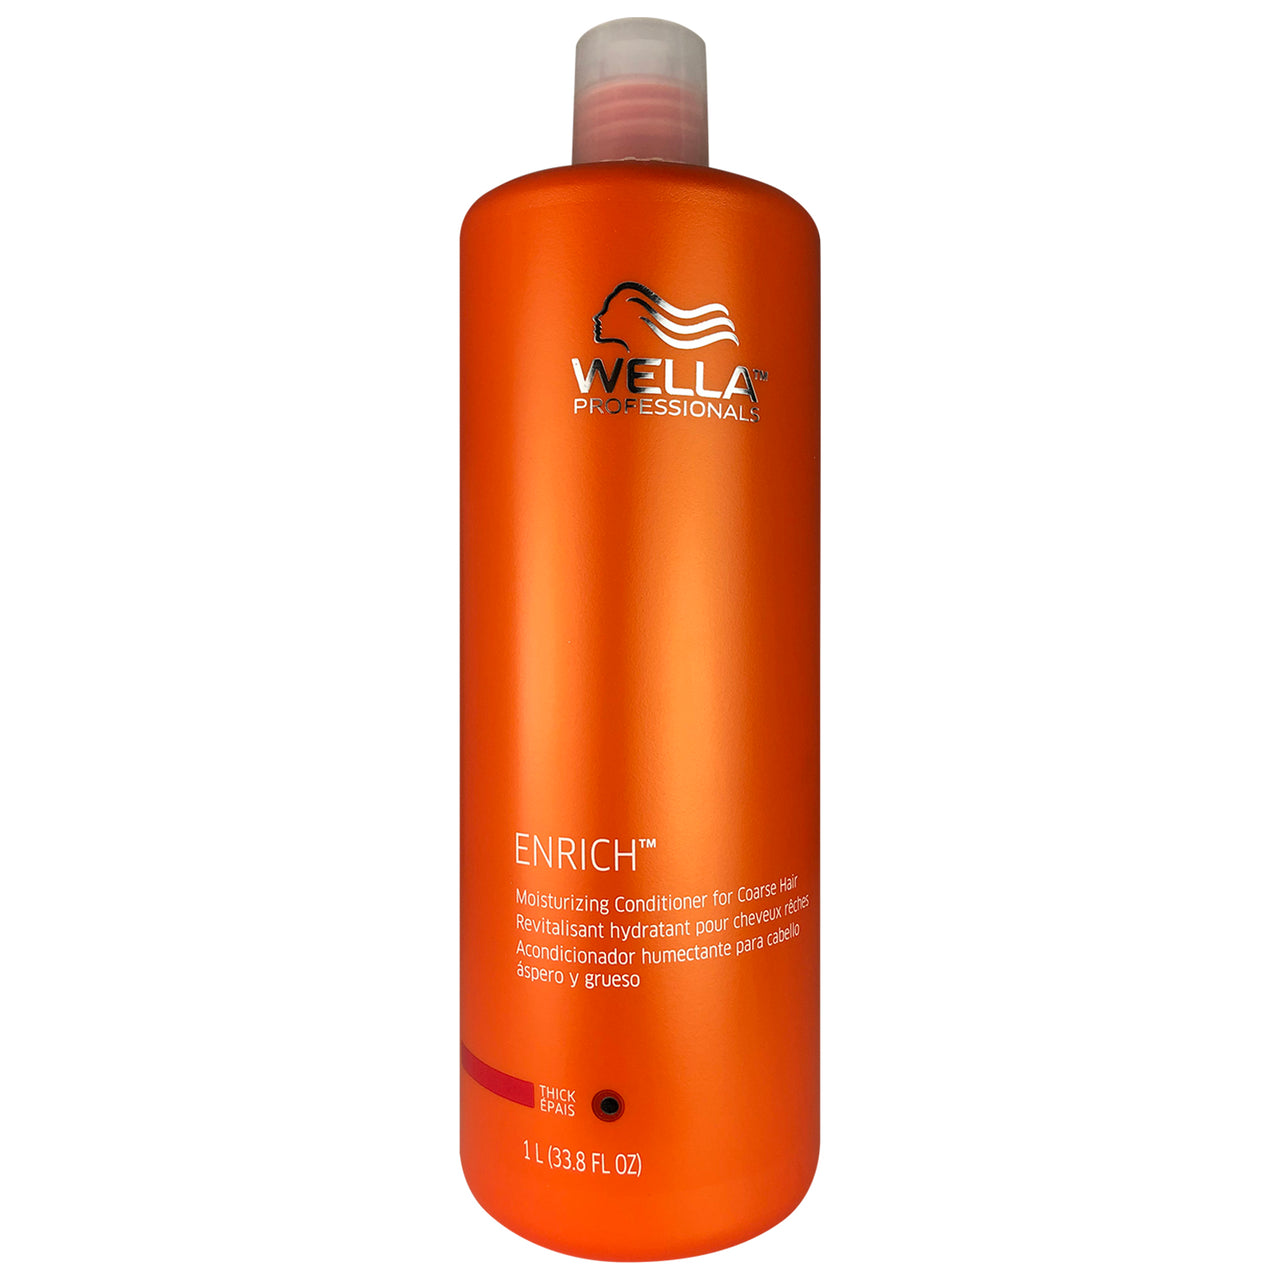 Wella Professionals Enrich Moisturizing Conditioner for Coarse Hair 33.8 oz